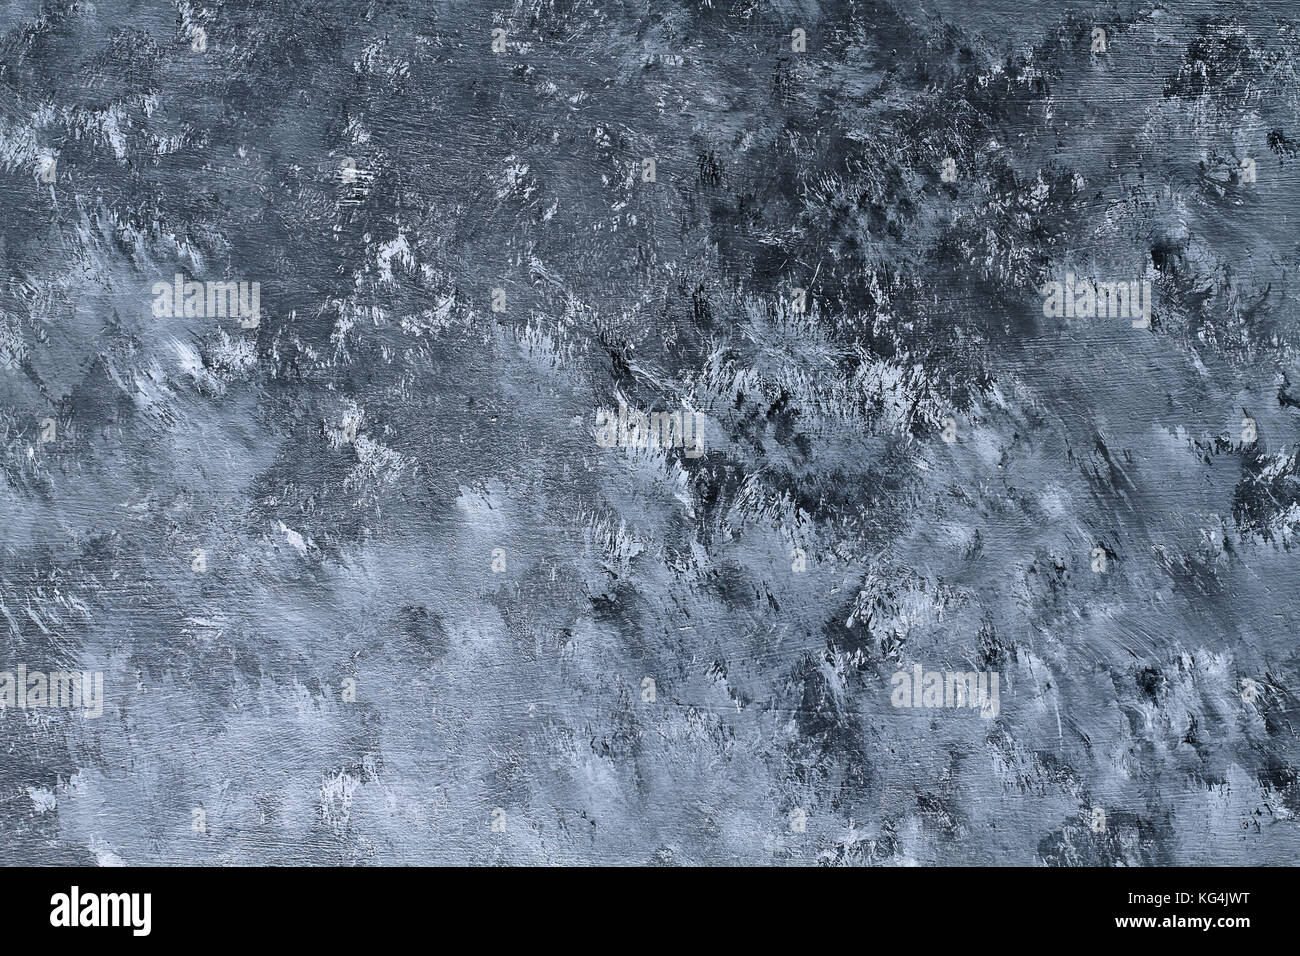 Hand painted grunge texture background with brush stroke marks. - Stock Image